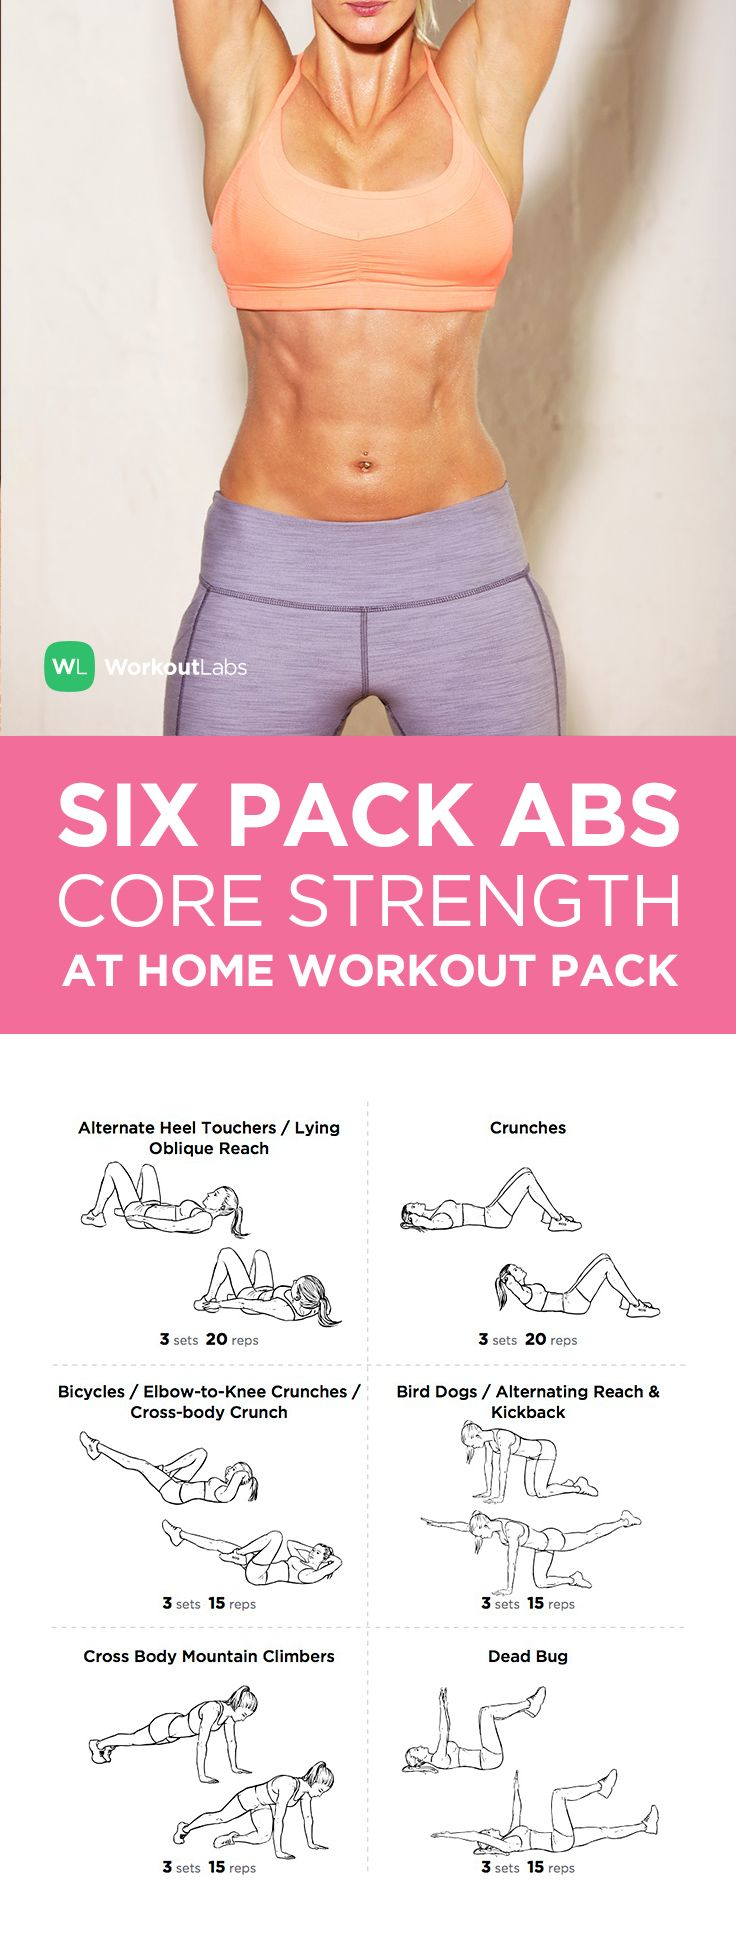 jordan retros 7 2015 Visit https   WorkoutLabs com workout packs six pack abs core strength at home workout pack for men women to download this Six Pack Abs Core Strength at Home Workout Pack for men  amp  women